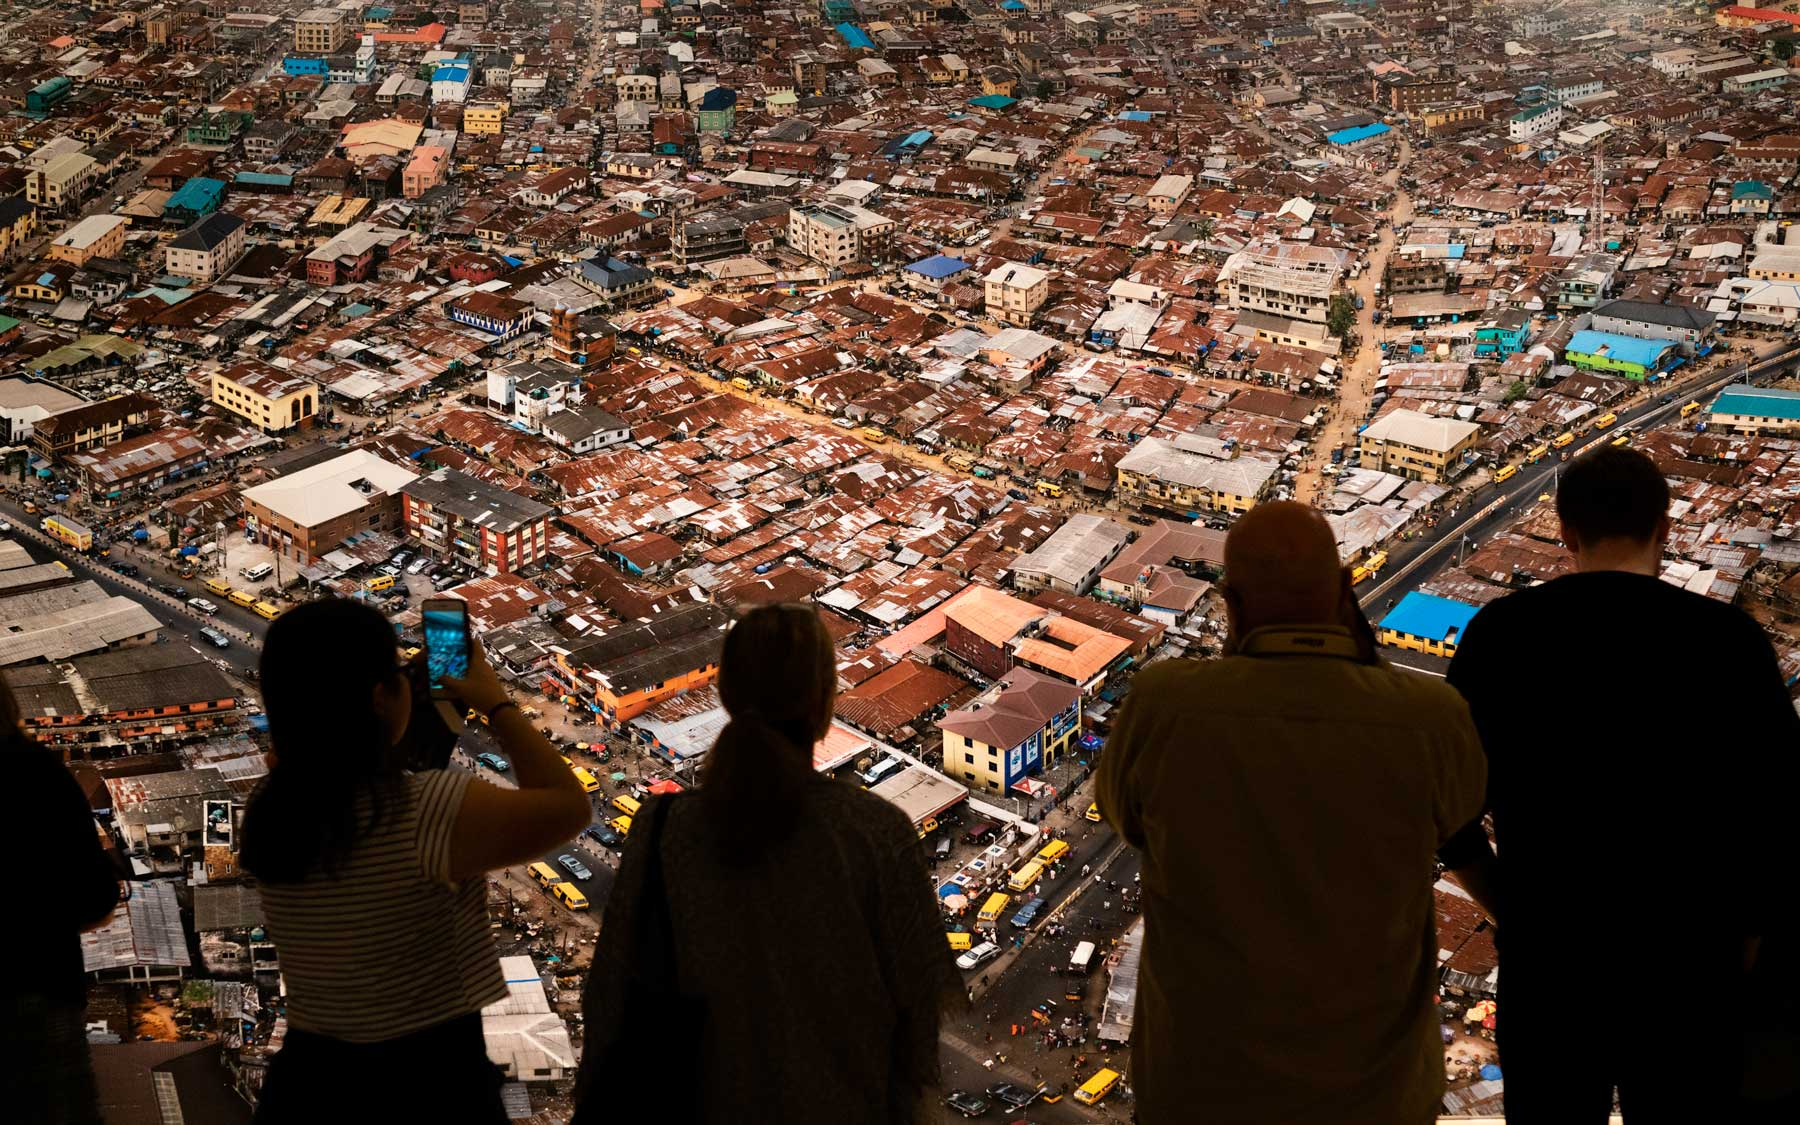 Viewers stand in front of Edward Burtynsky's aerial photo of Mushkin Market - Lagos, Nigeria.